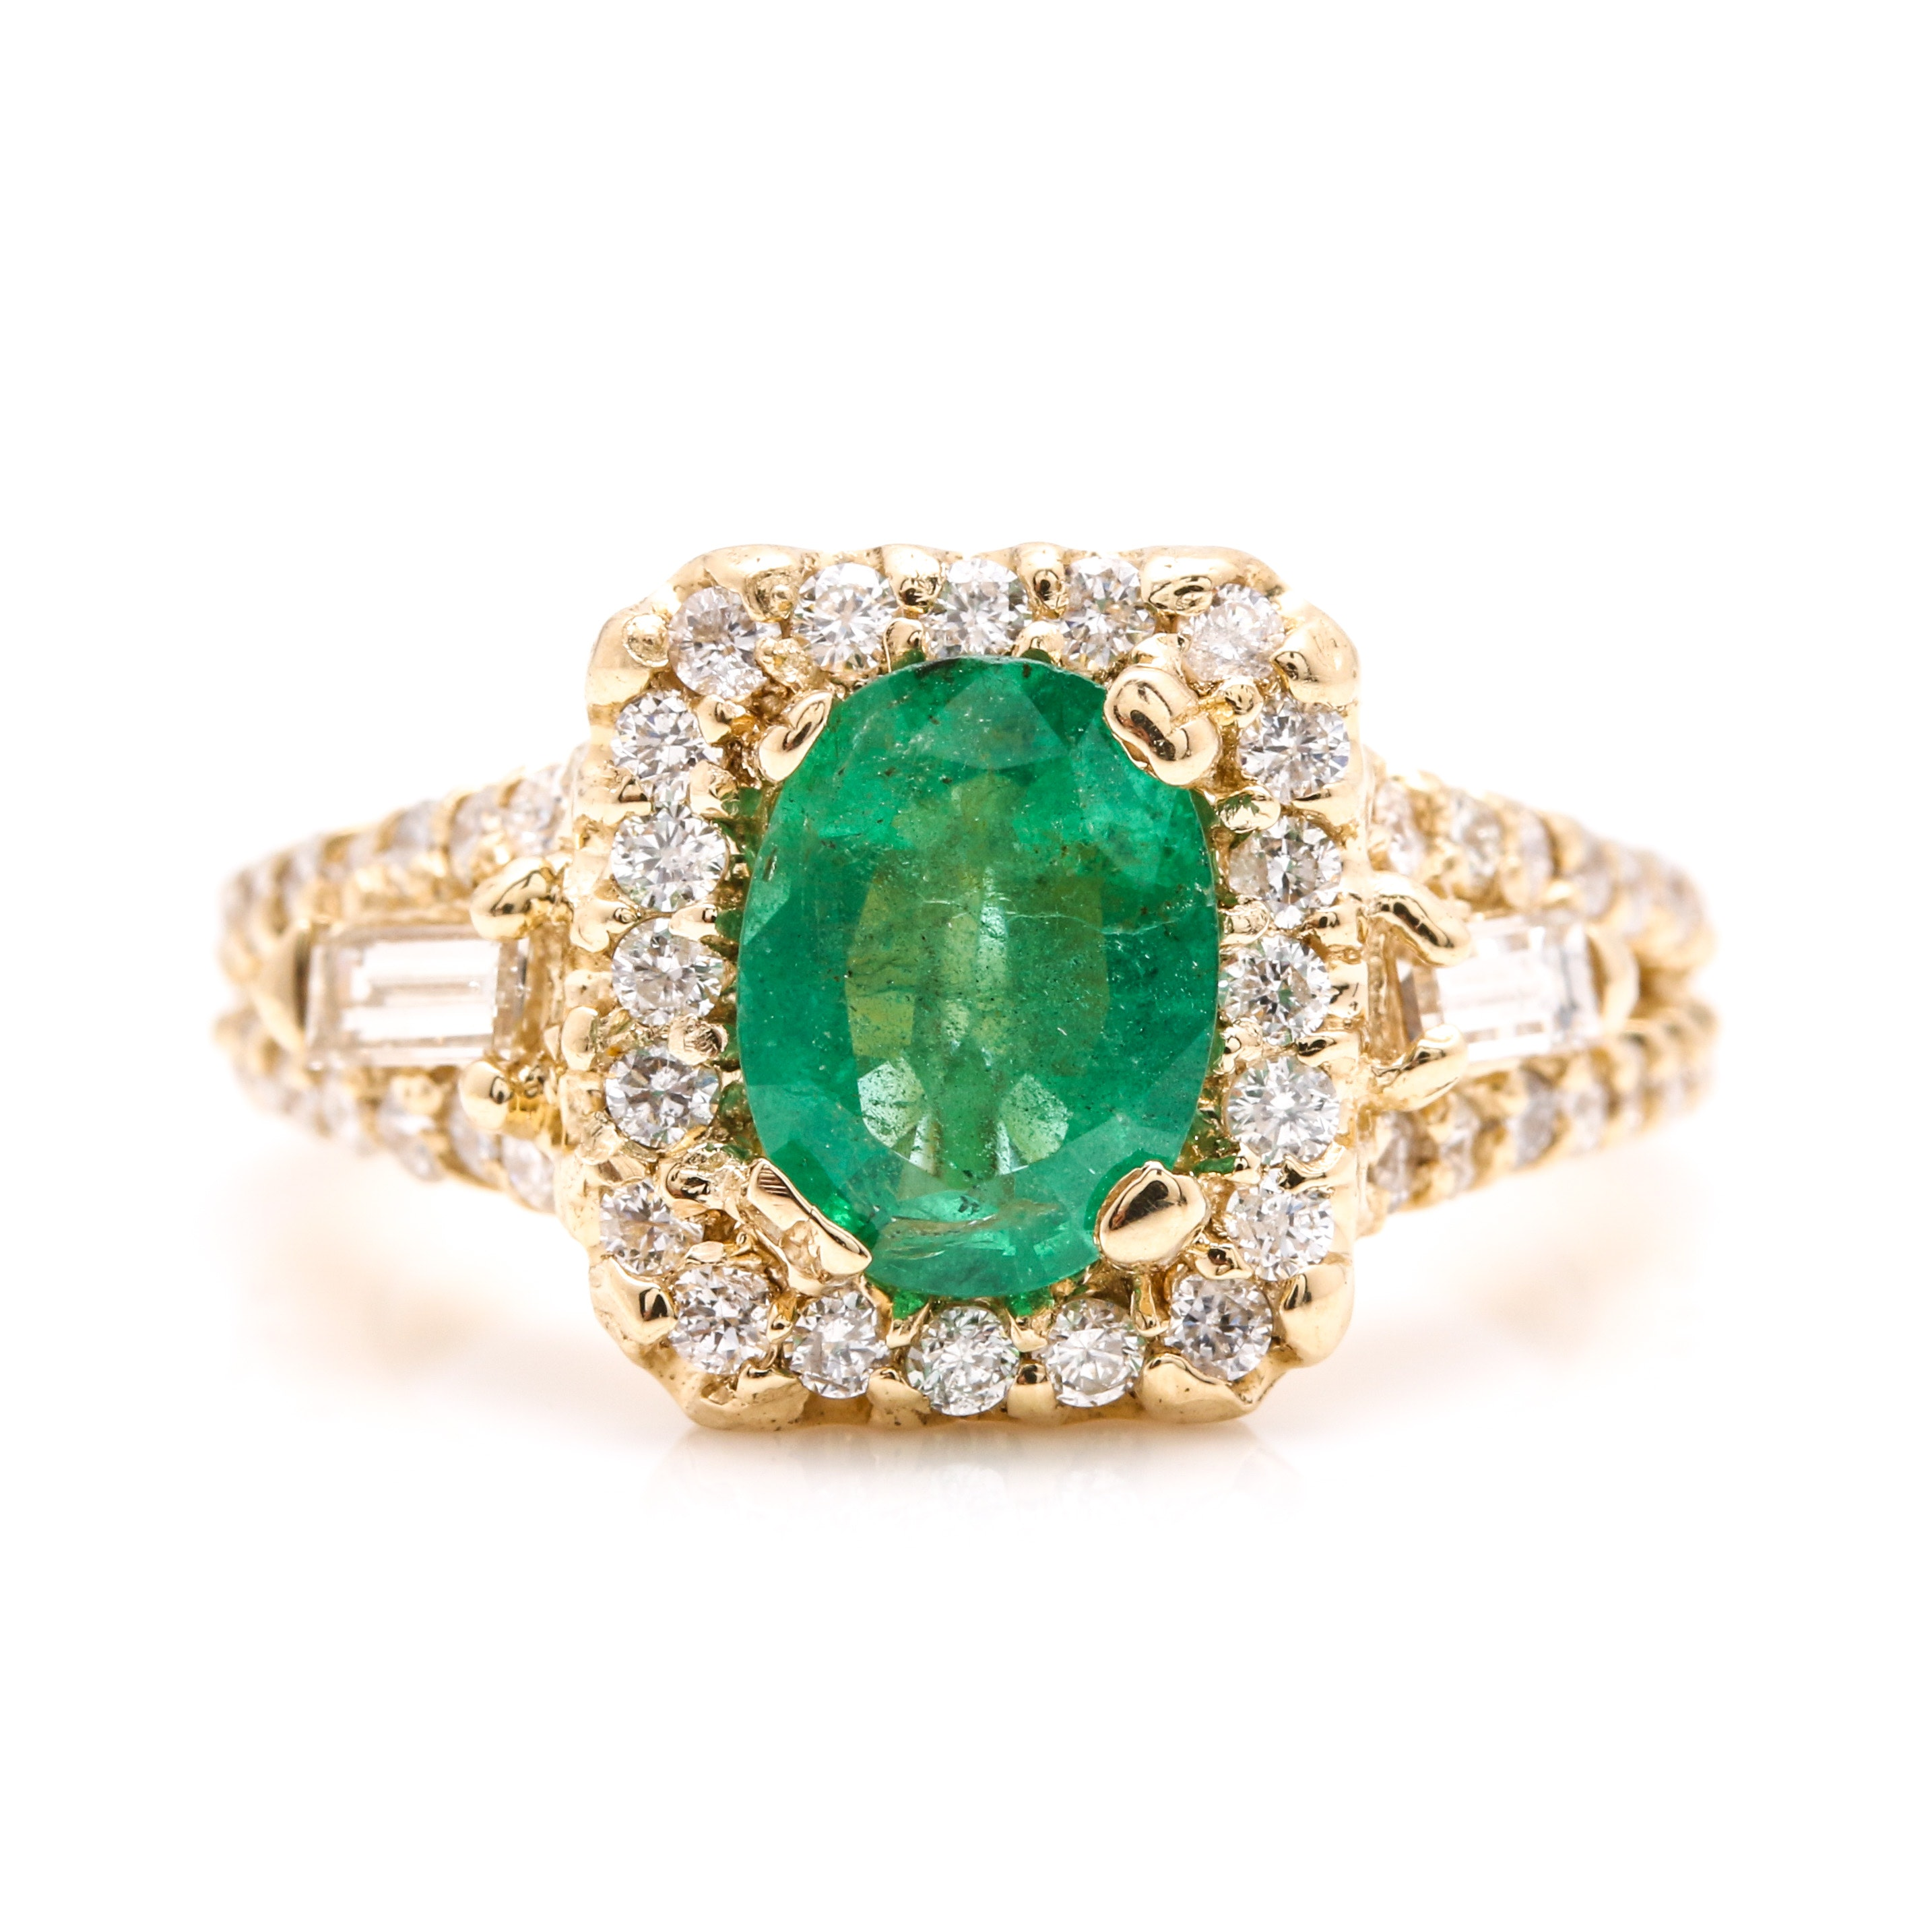 14K Yellow Gold 1.01 CT Emerald and 0.99 CTW Diamond Ring